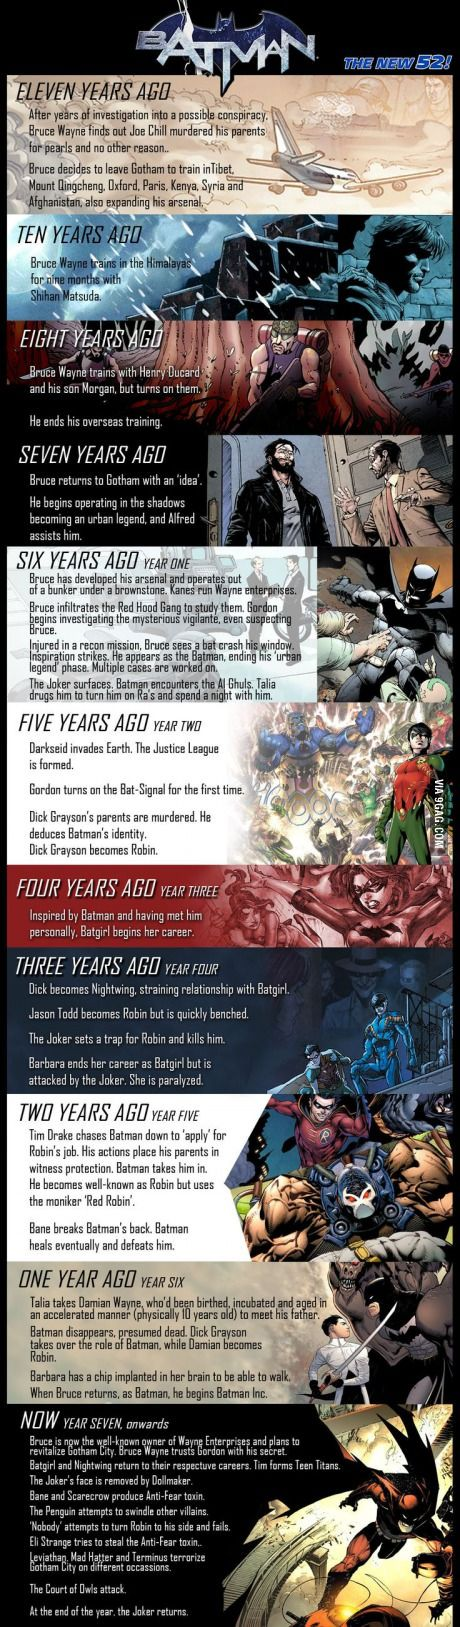 New 52 Batman timeline - Visit to grab an amazing super hero shirt now on sale!